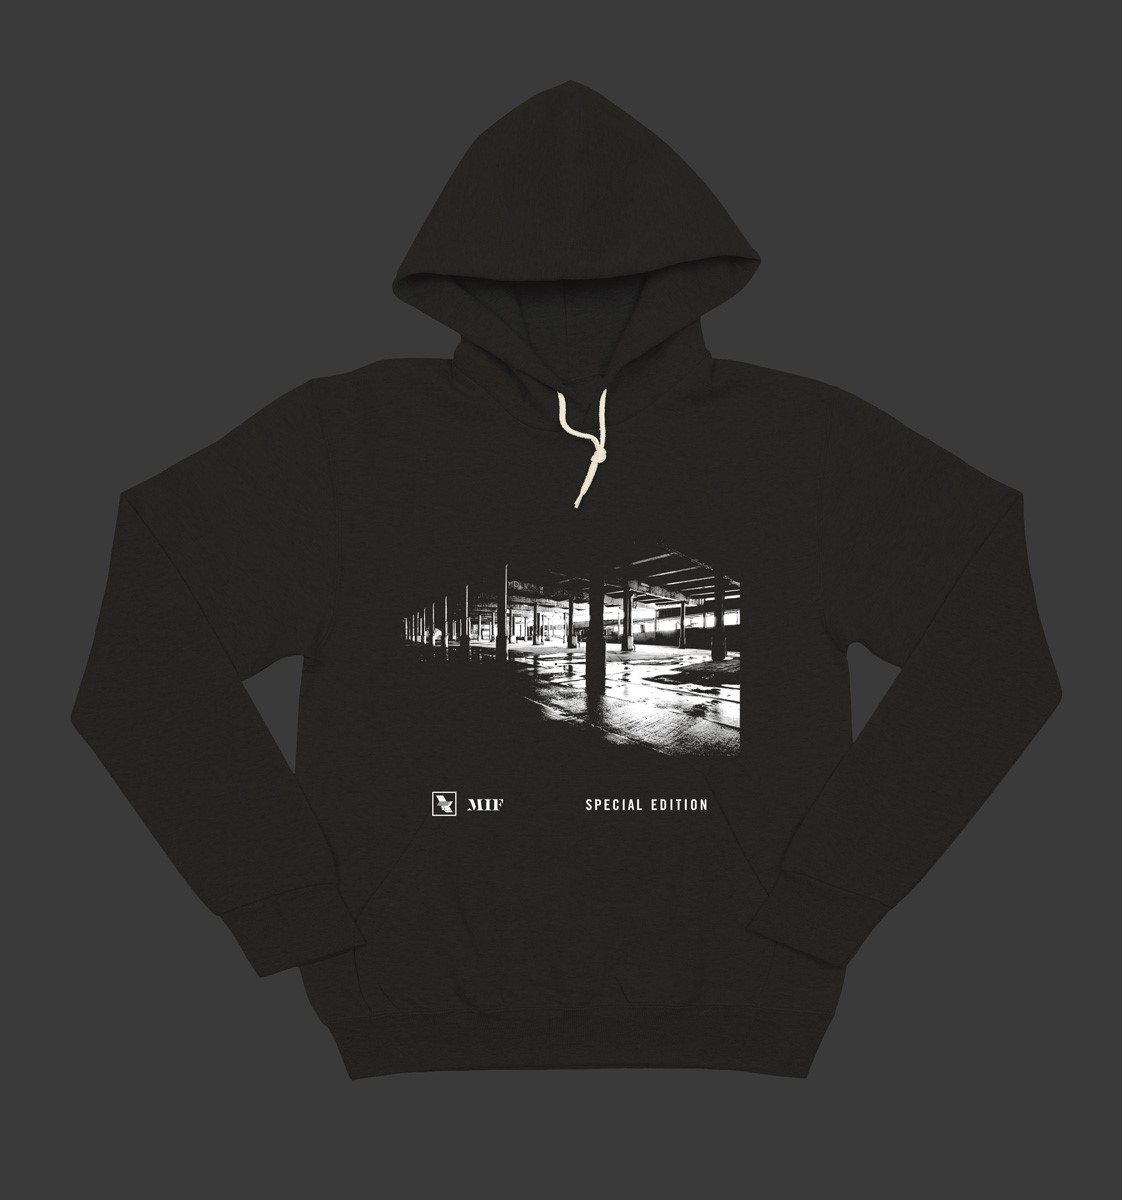 WHP x MIF Special Edition Hoody - The Warehouse Project